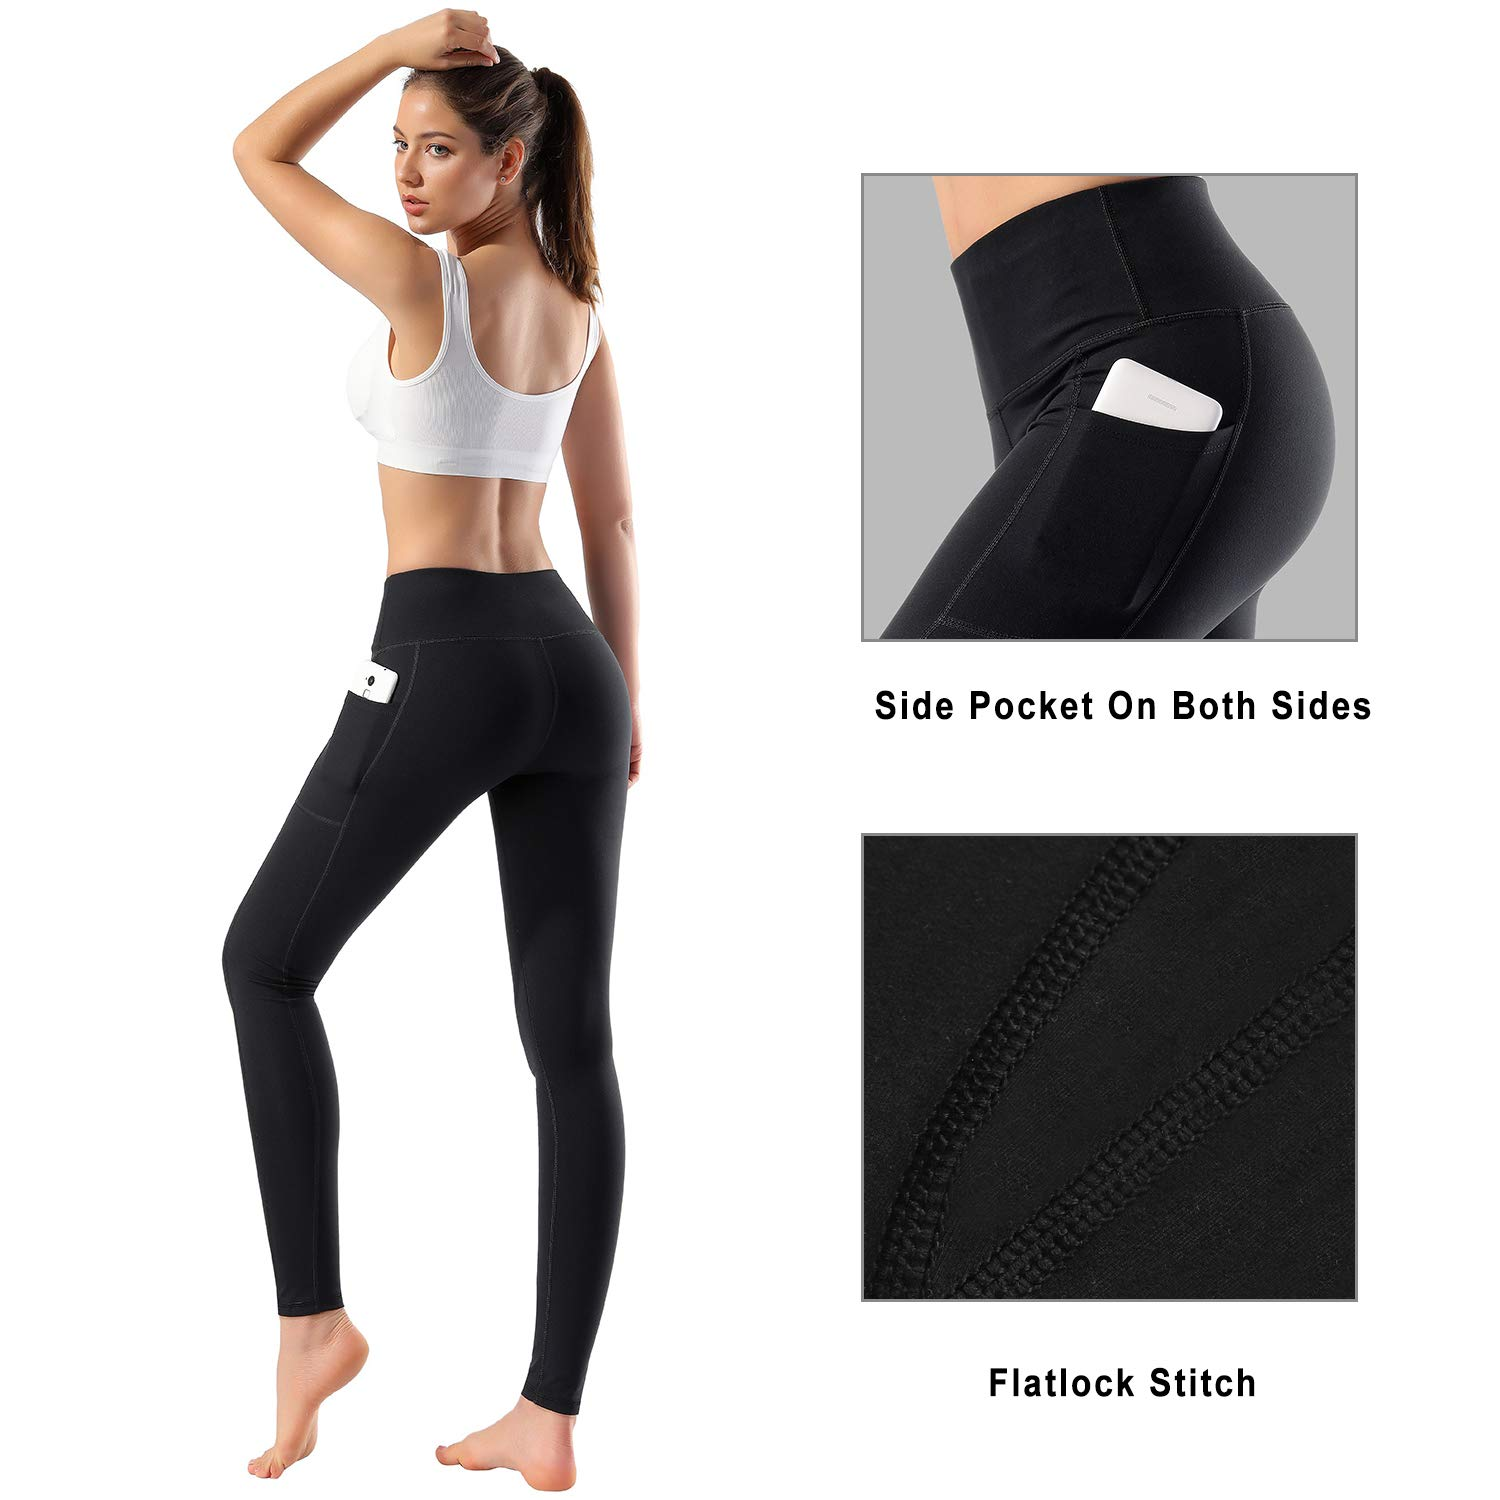 Women's High Waist Yoga Pants with Side Pockets & Inner Pocket Tummy Control Workout Running 4-Way Stretch Sports Leggings, Medium by HOFI (Image #3)